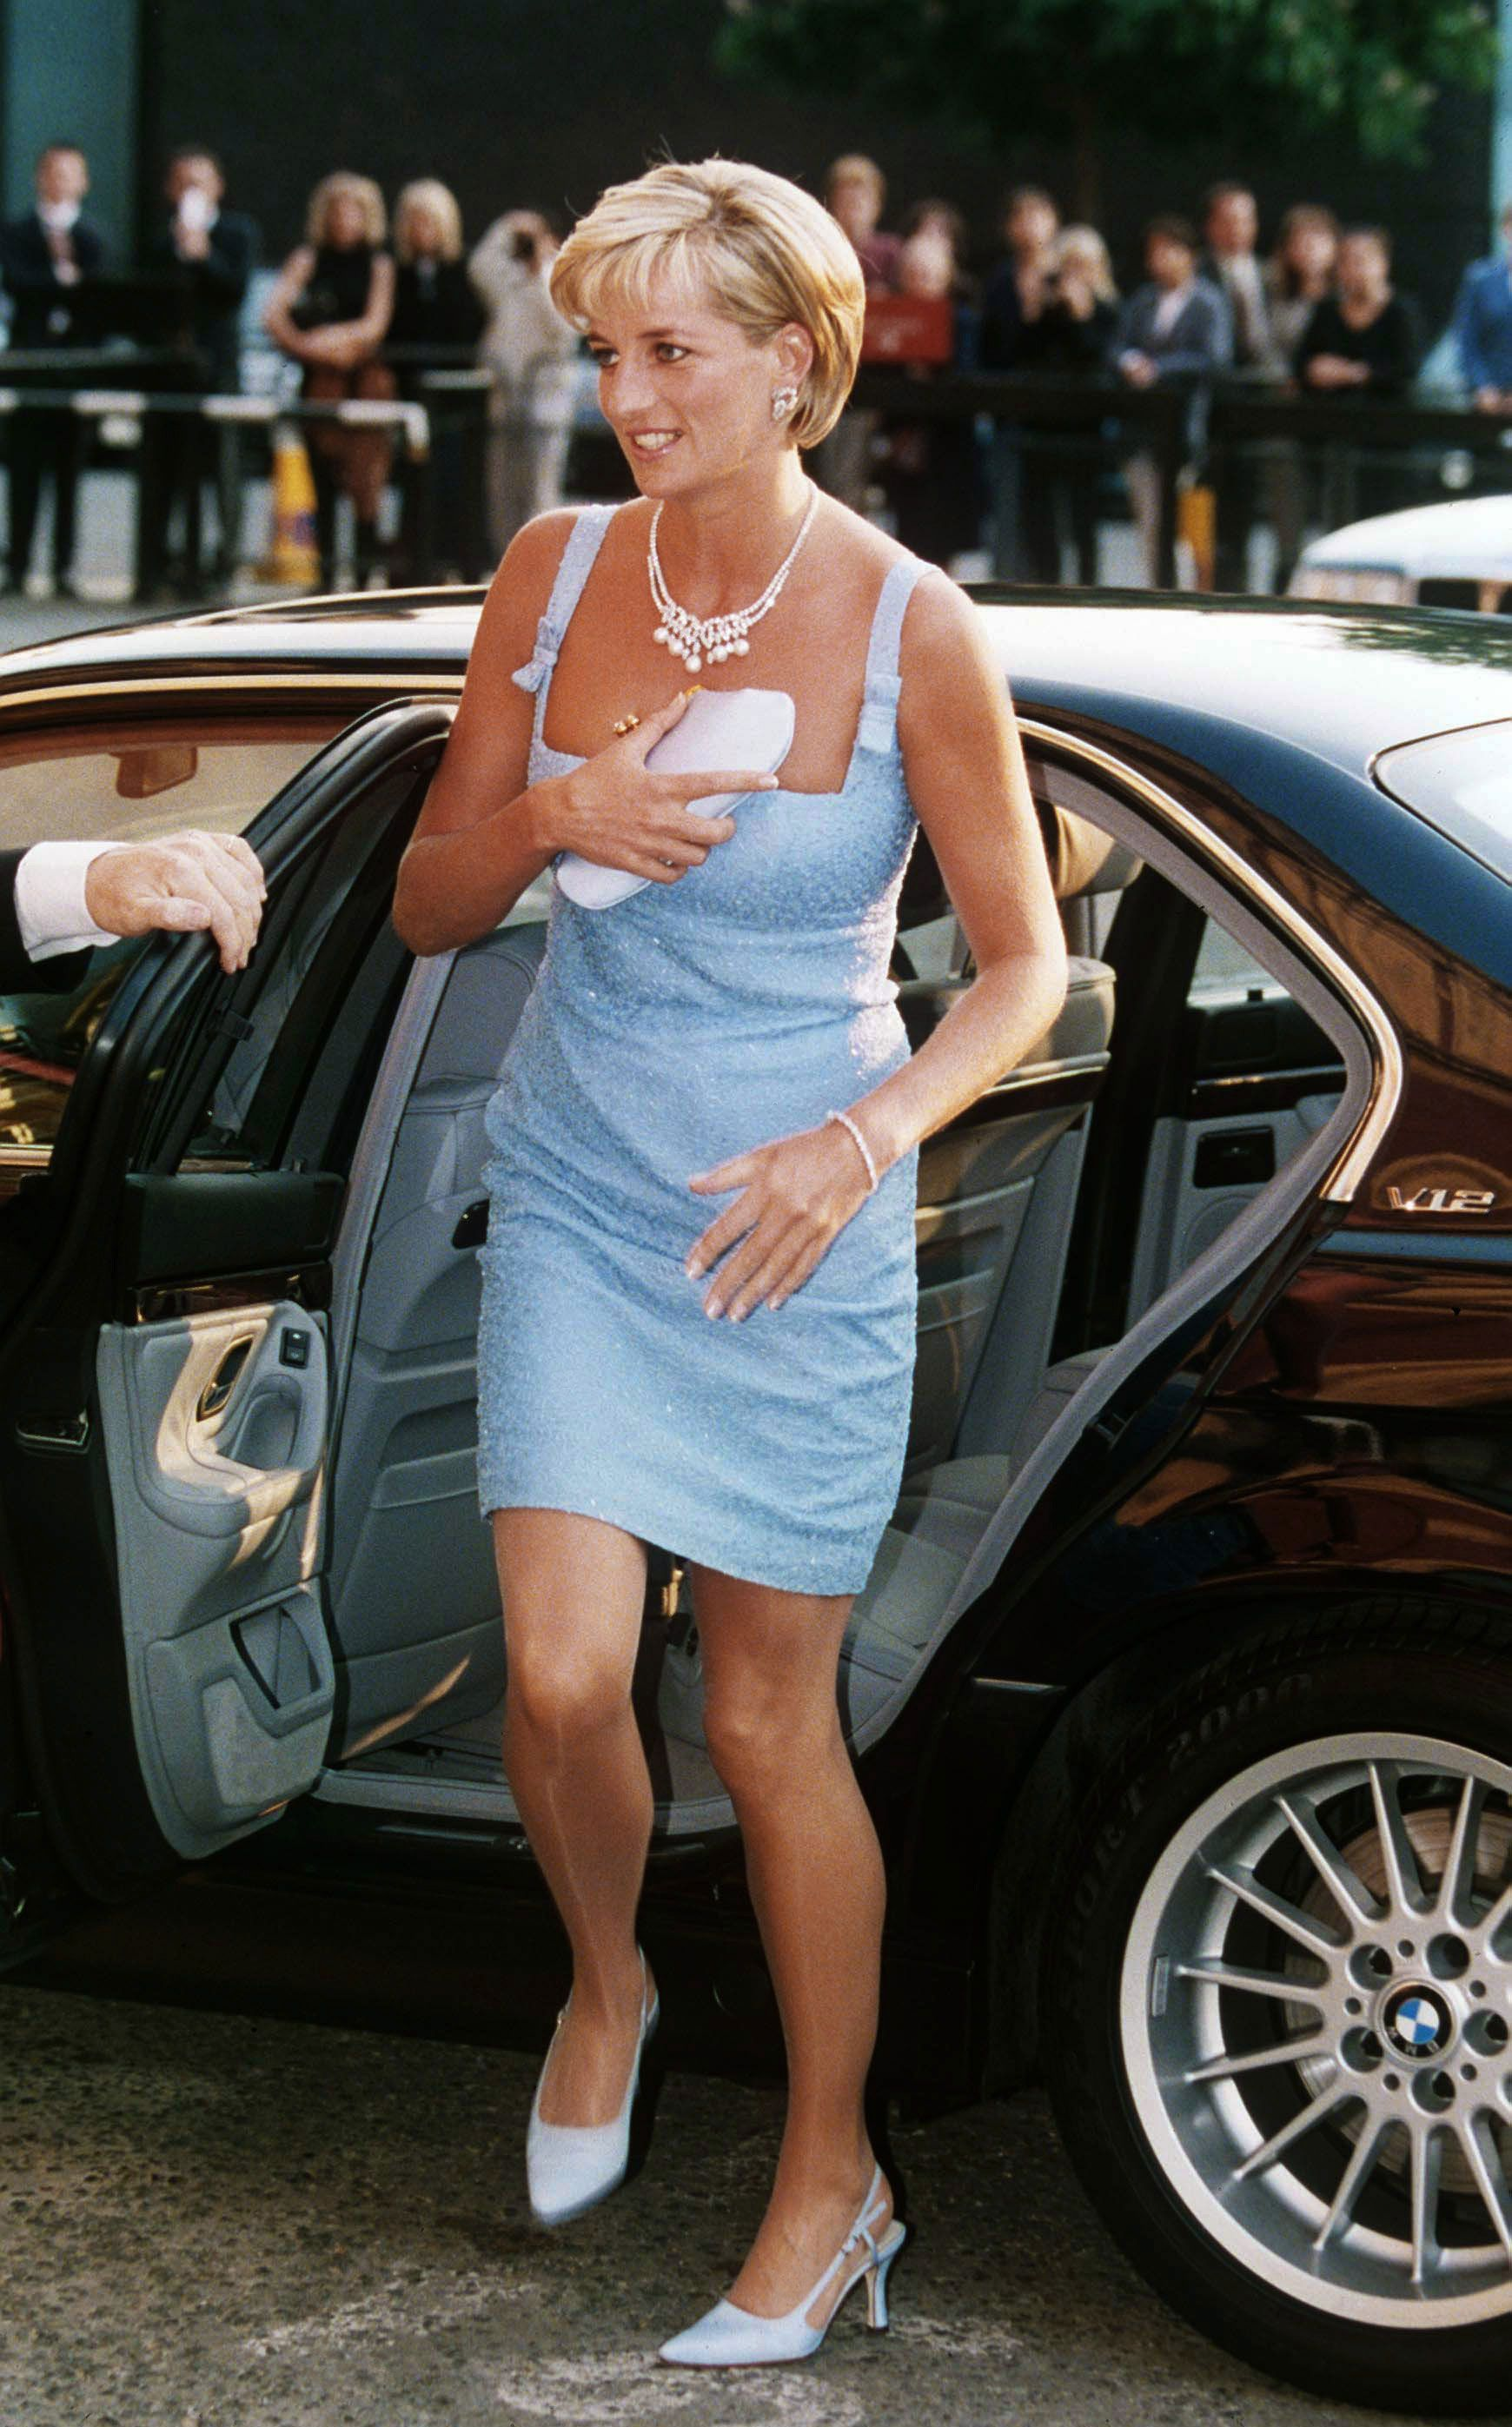 Just months before her death, Diana was photographed in an ice blue cocktail dress before catching a performance of Swan Lake at Royal Albert Hall in London. It was at this time that Diana was seeing Dodi Al-Fayed, with whom she died in the car crash in Paris, August 1997.   - MarieClaire.com